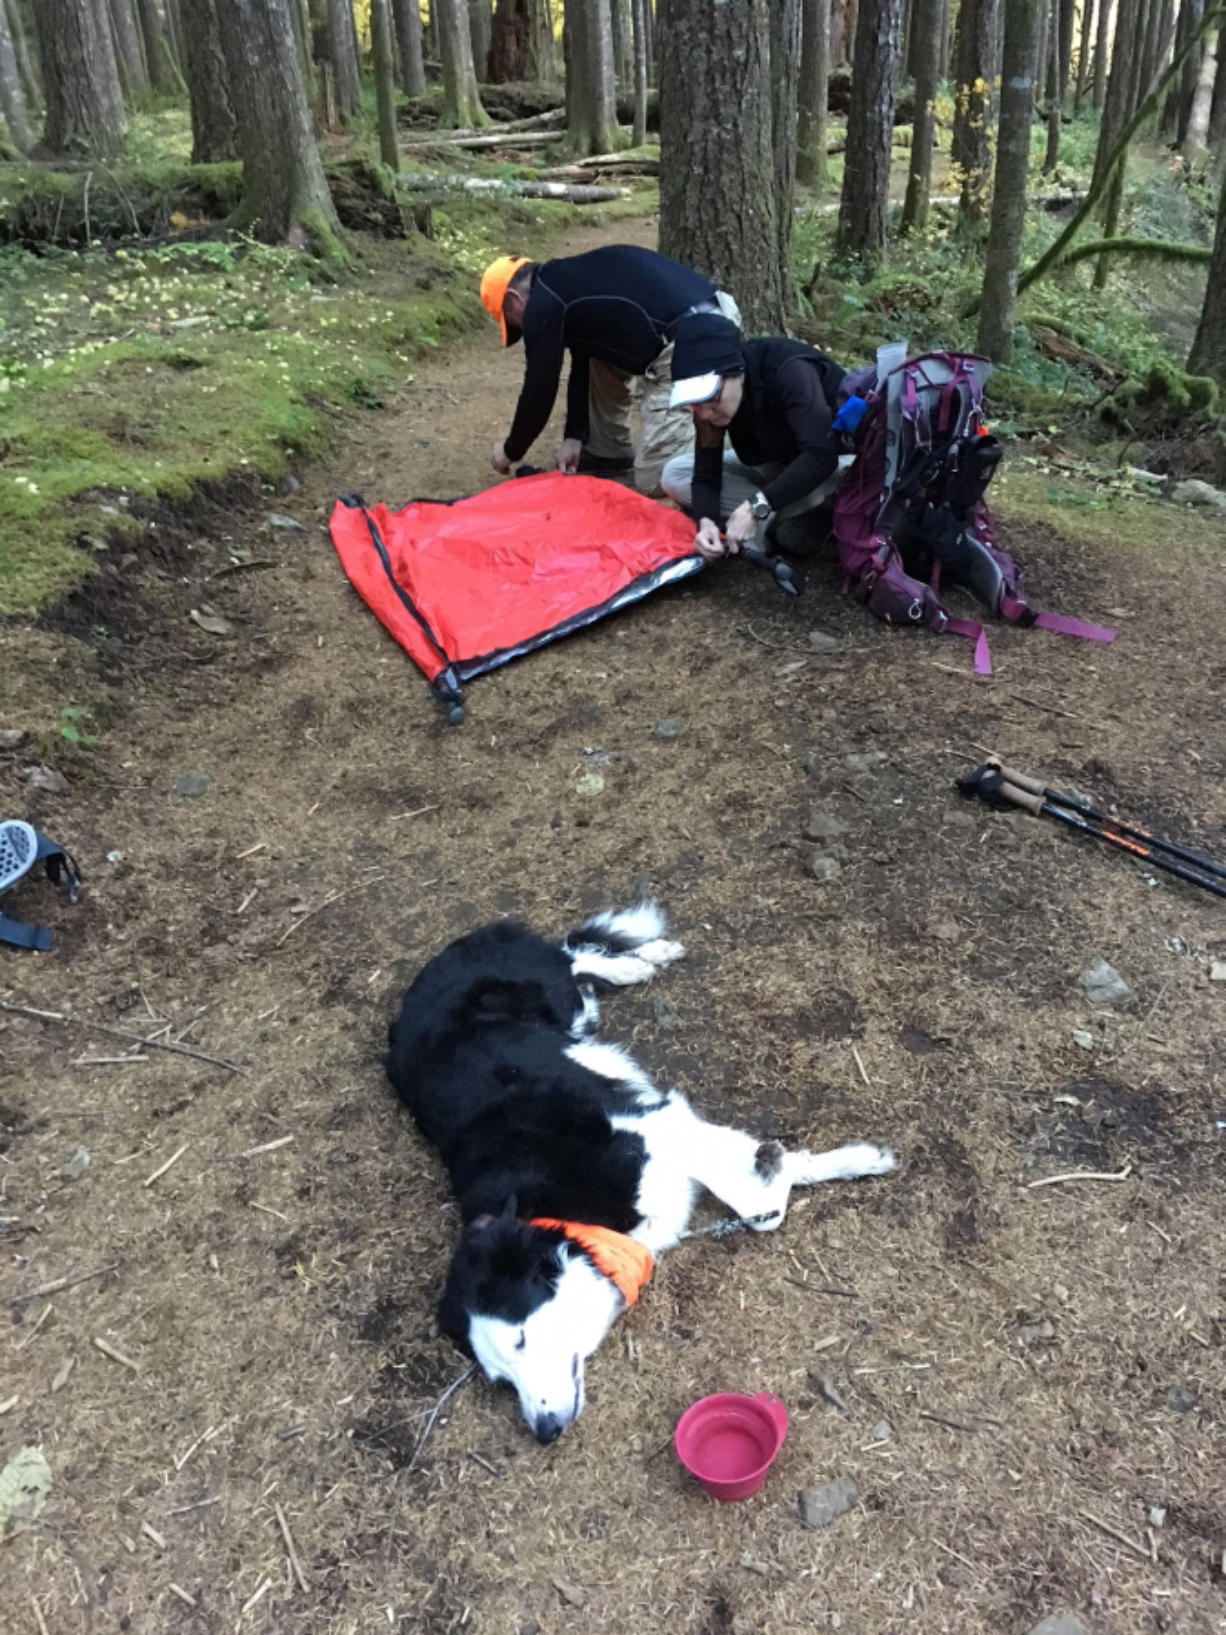 Laura Stockton and Rick Blevins helped Andy Healy create a litter to evacuate her 35-pound border collie, Fen, after she lost the ability to use her legs while hiking Oct. 29. Fen became unresponsive after eating a discarded marijuana edible in a vacant campsite. Contributed by Andy Healy